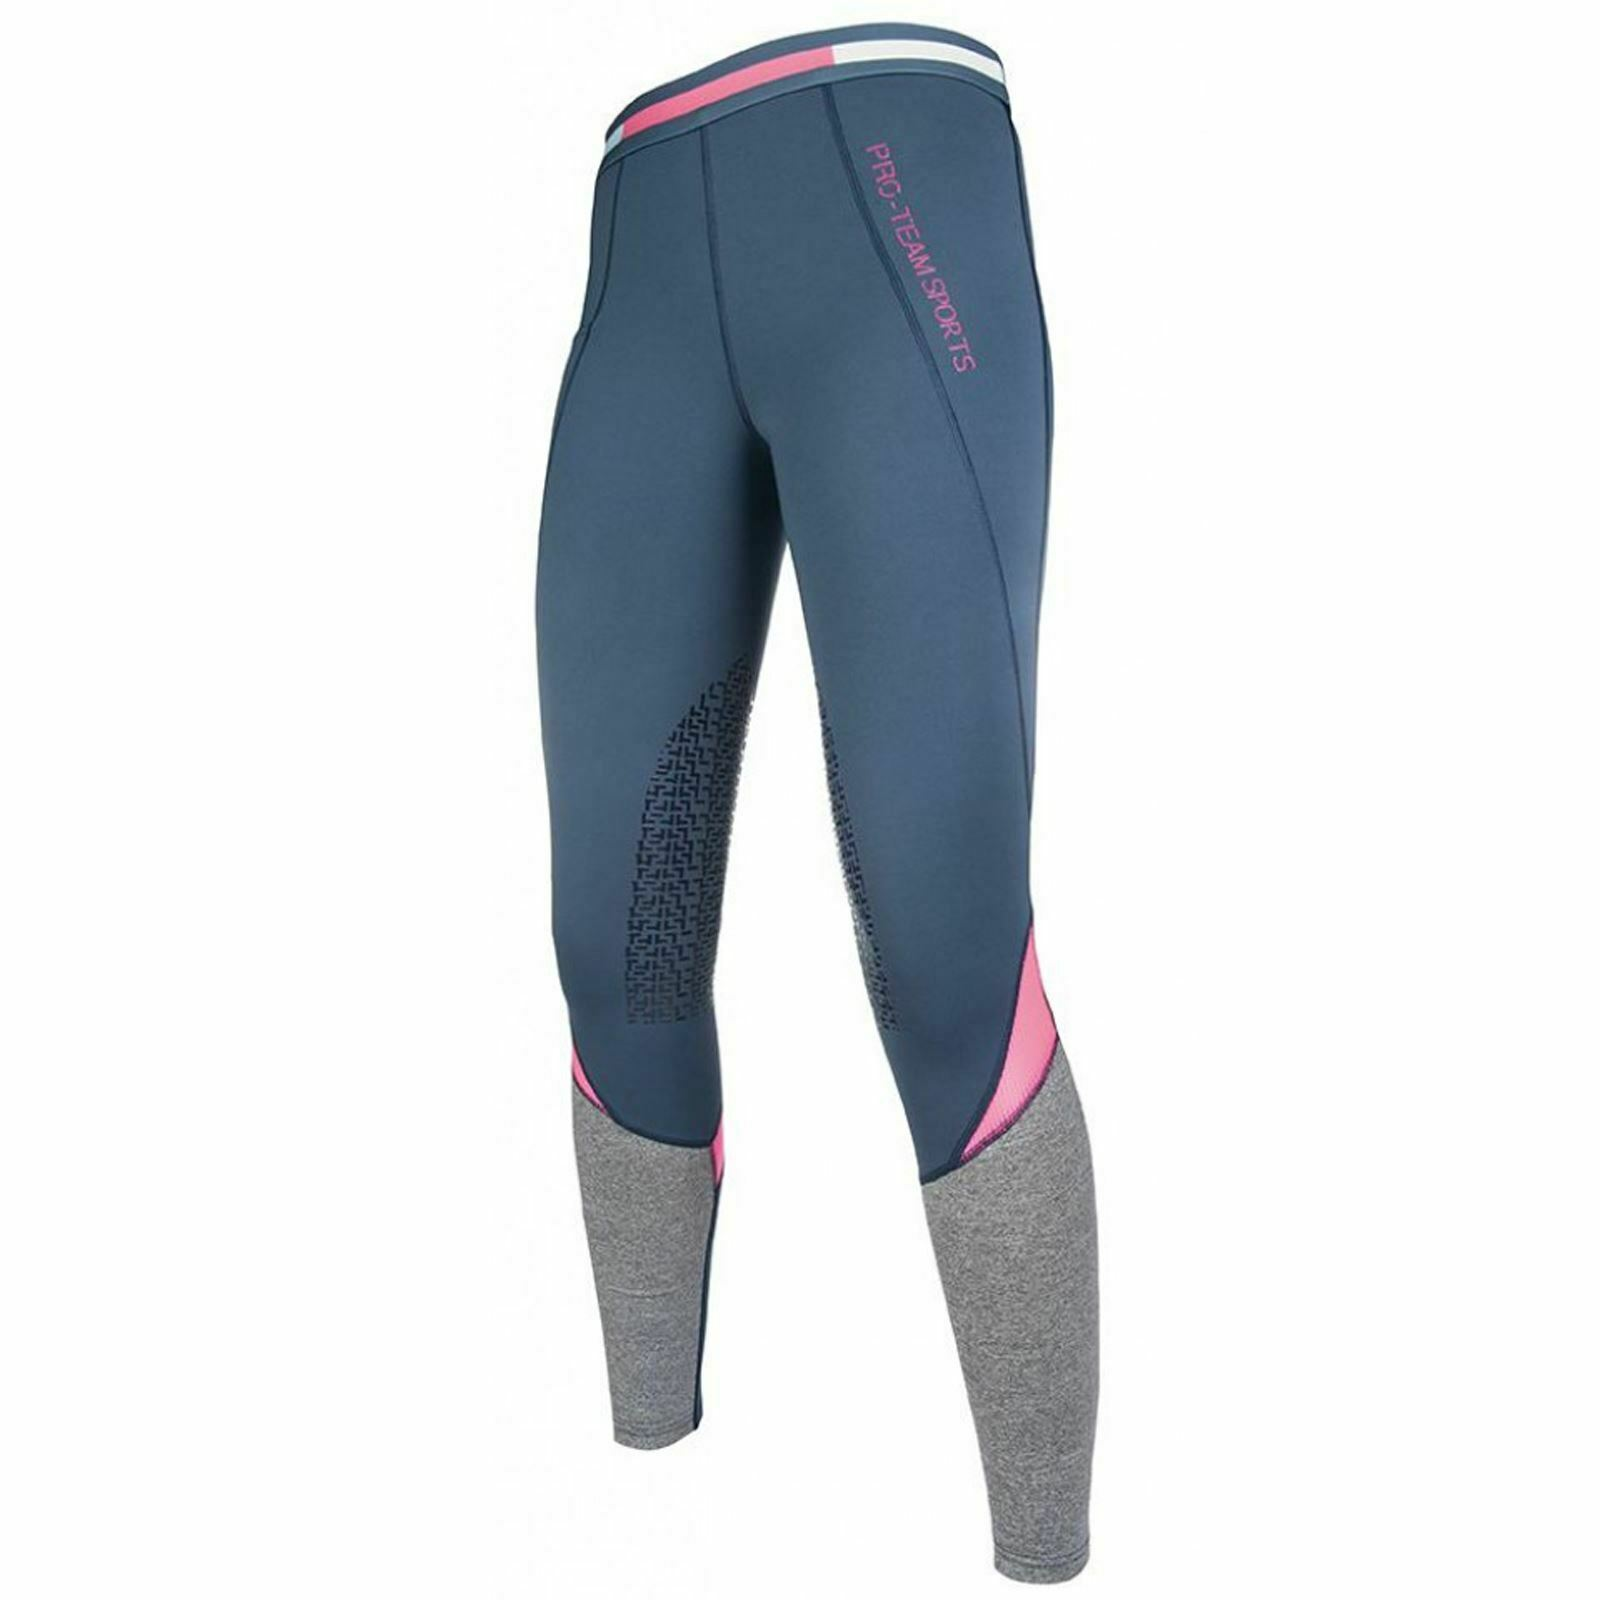 HKM Pro Team Active 19 Ladies Horse Riding Silicone Knee Stable Riding Leggings